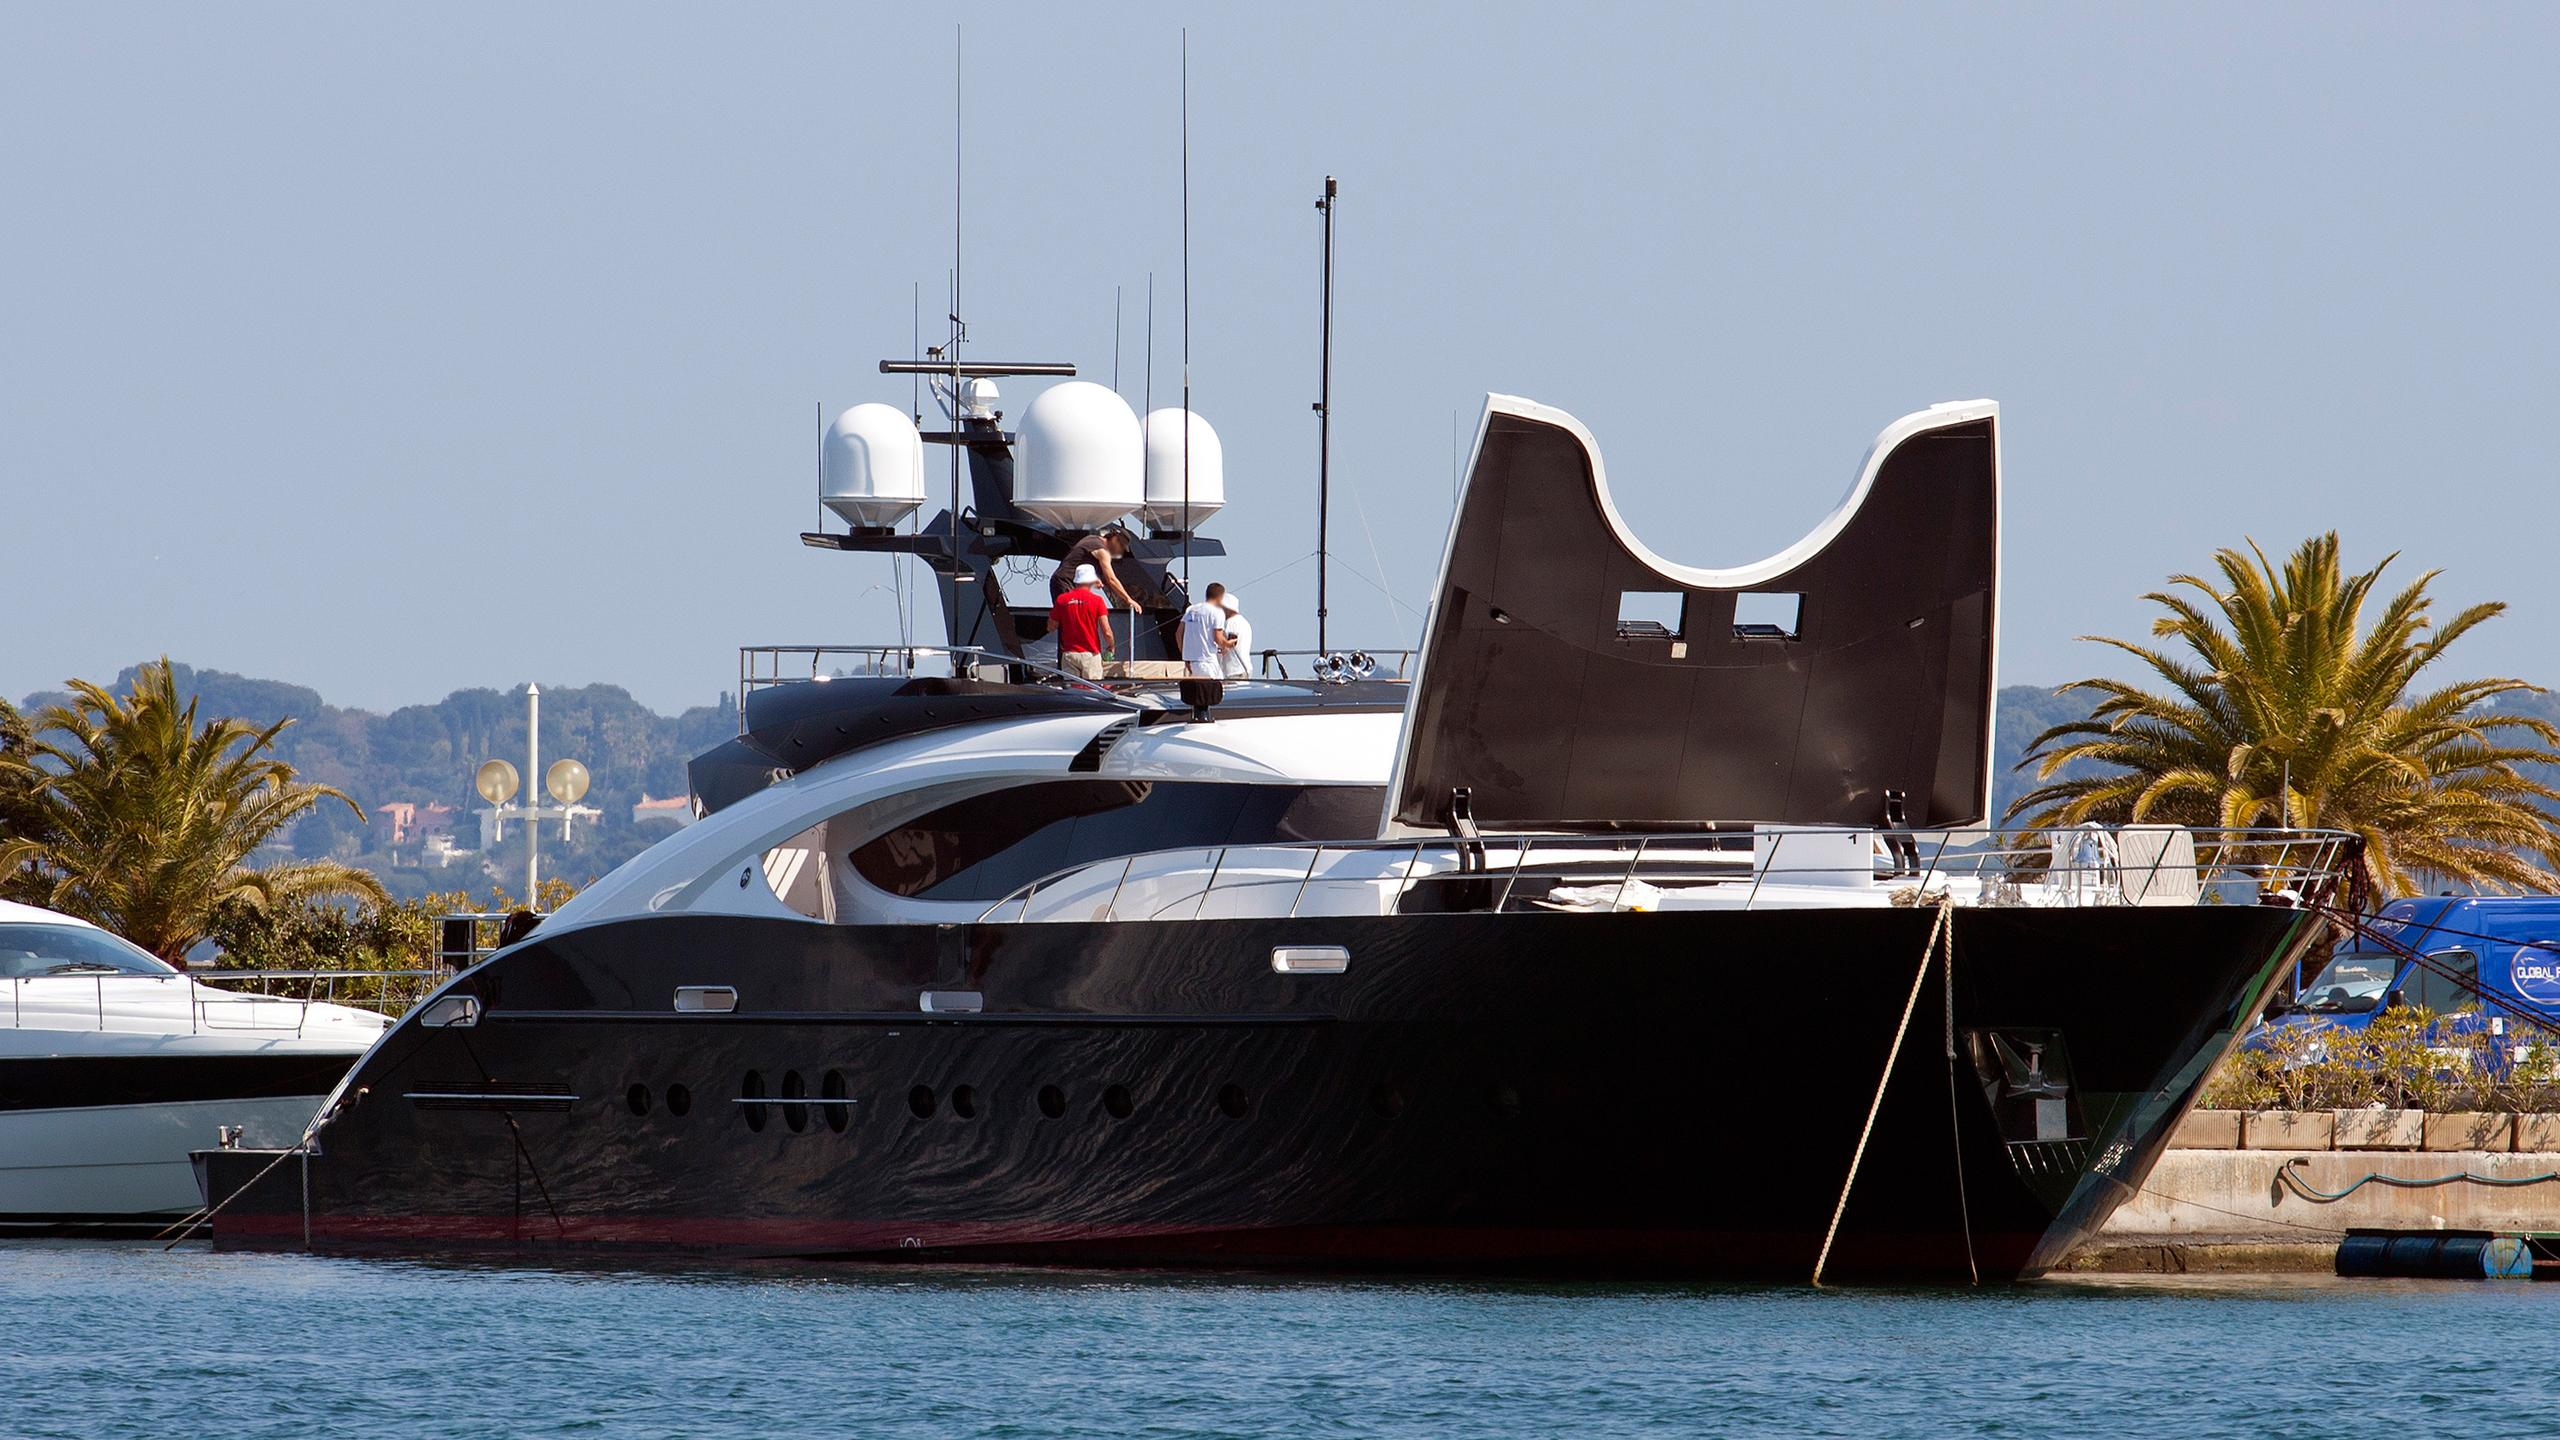 domino-motor-yacht-palmer-johnson-135-my-2009-41m-moored-front-profile